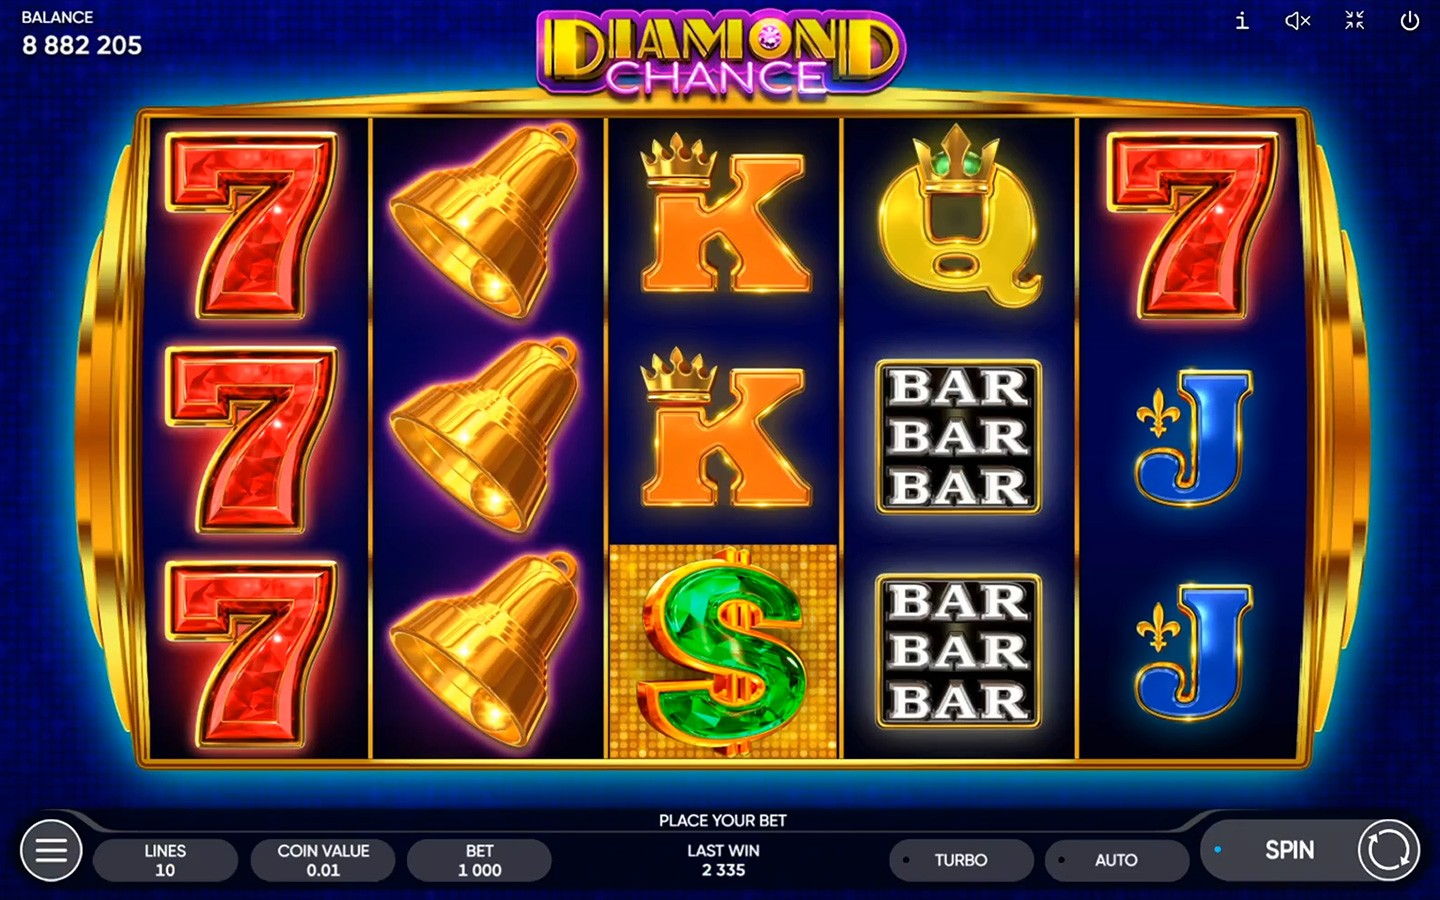 SLOT GAME SOFTWARE | Play Diamond Chance game now